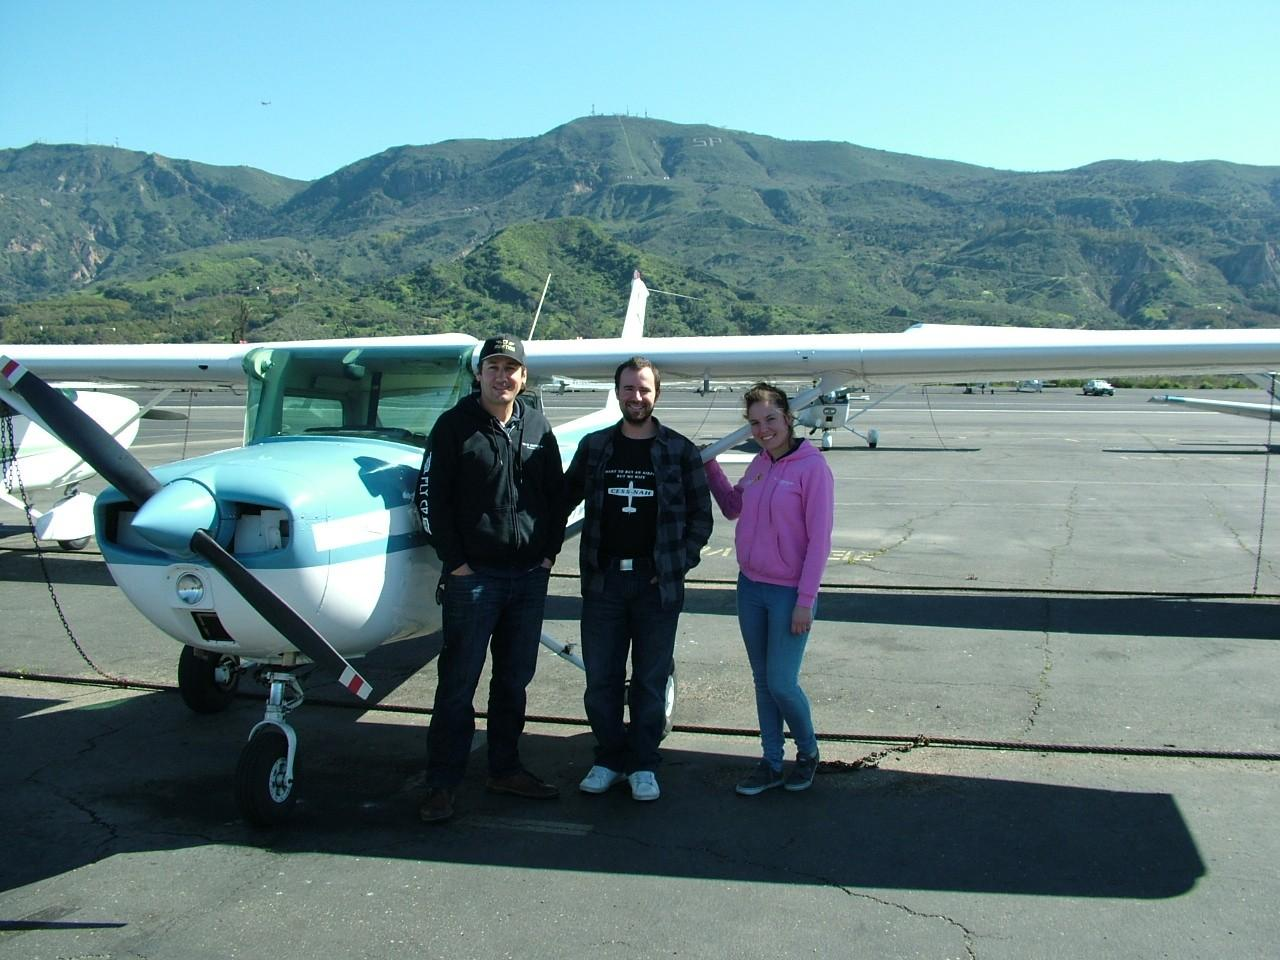 First Solo - Eric Stanton